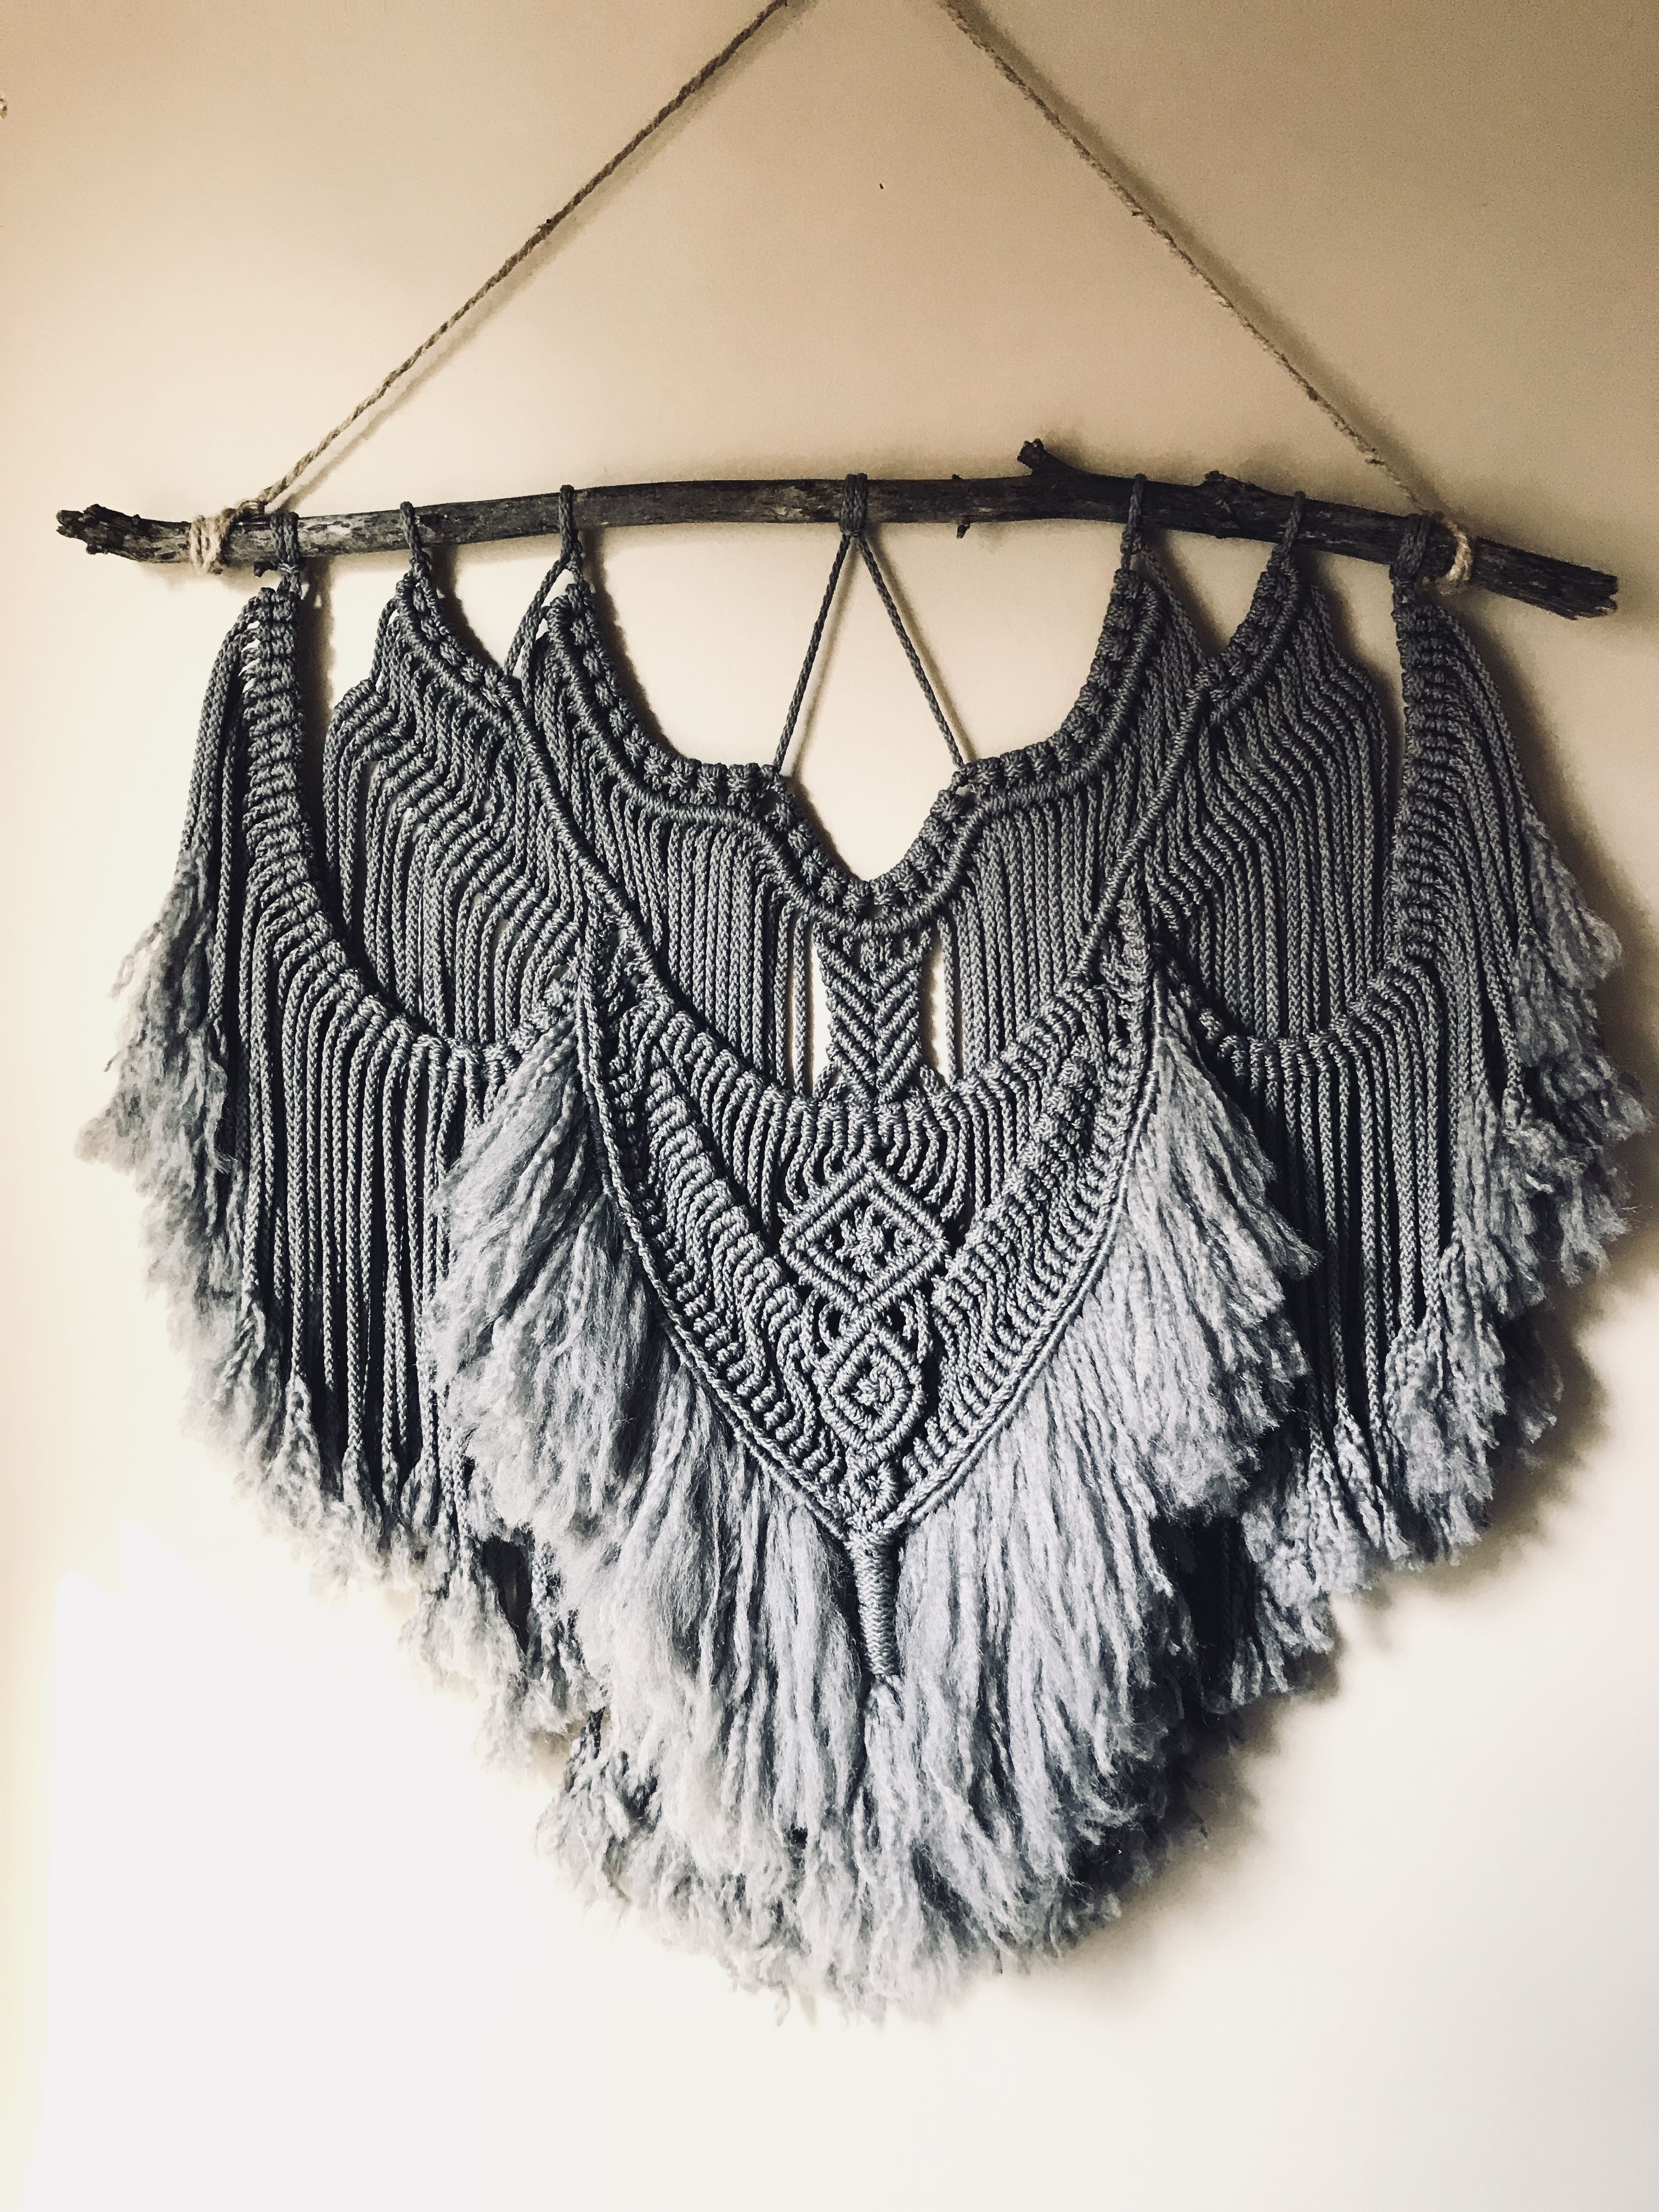 Visit my Etsy shop for more handmade macrame! | Large